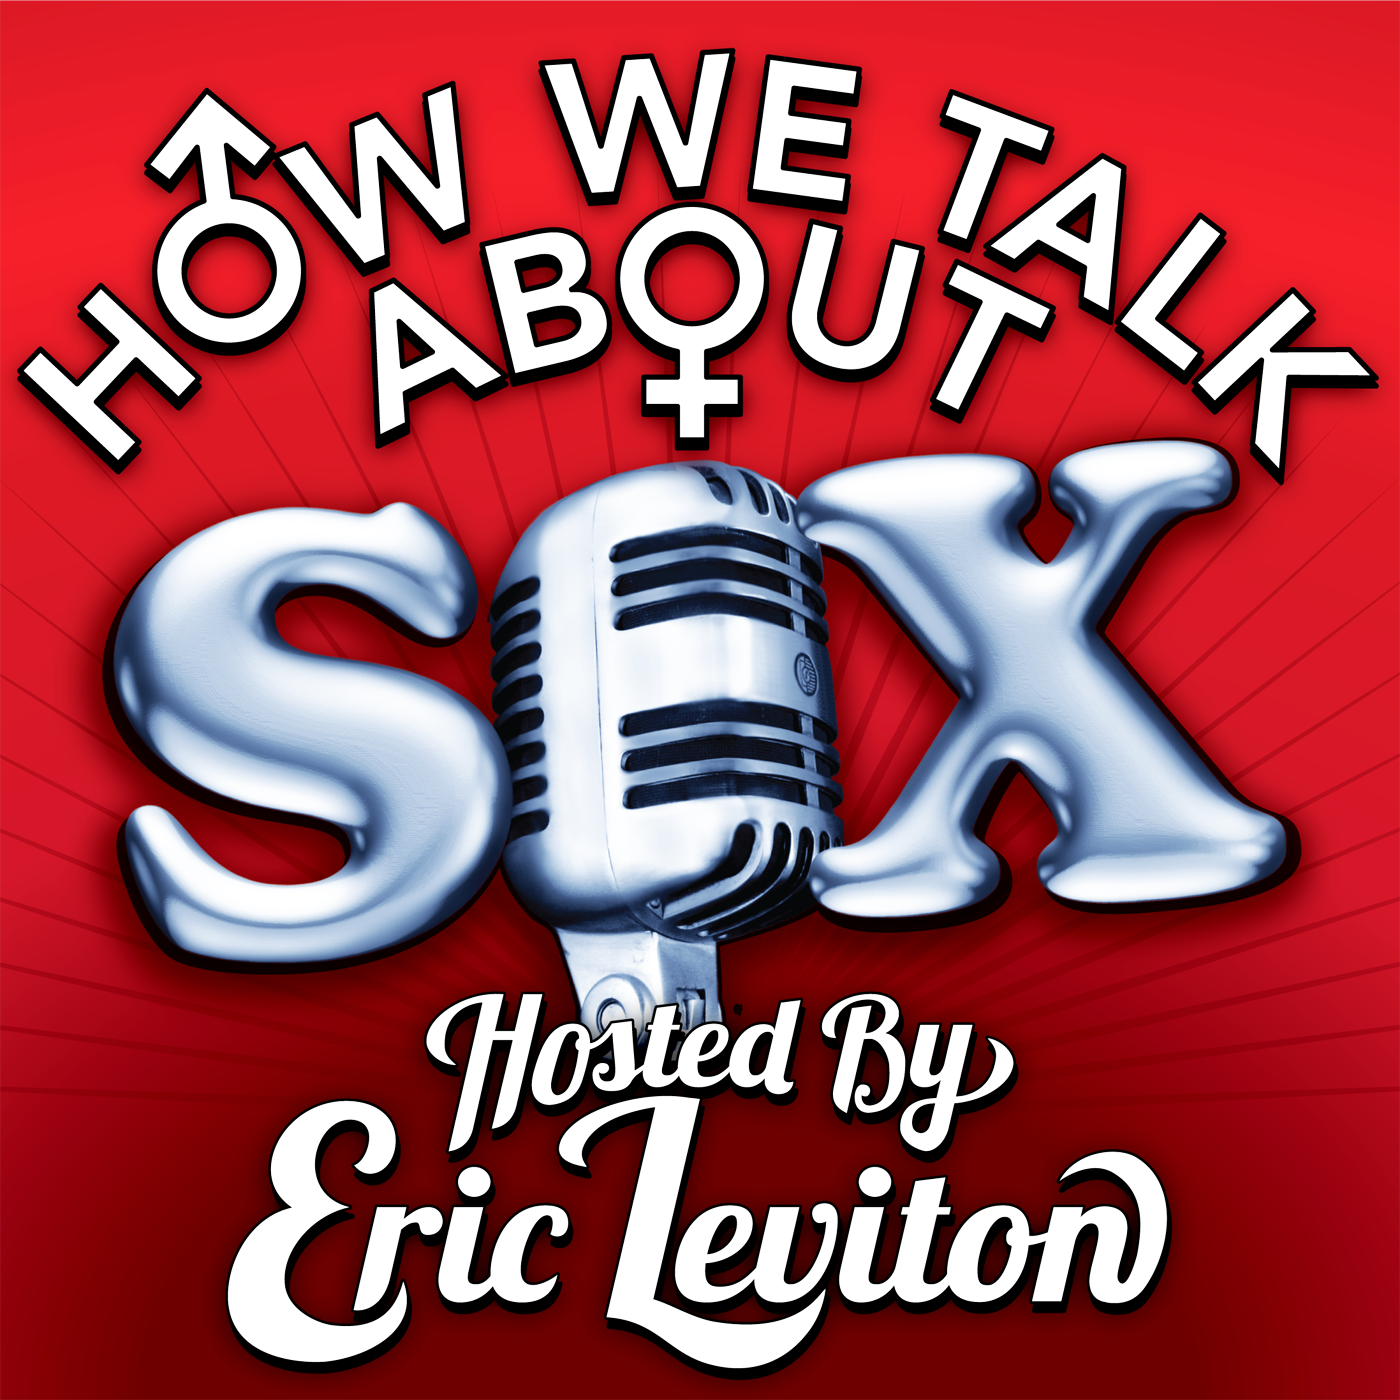 HOW WE TALK ABOUT SEX hosted by Eric Leviton show art